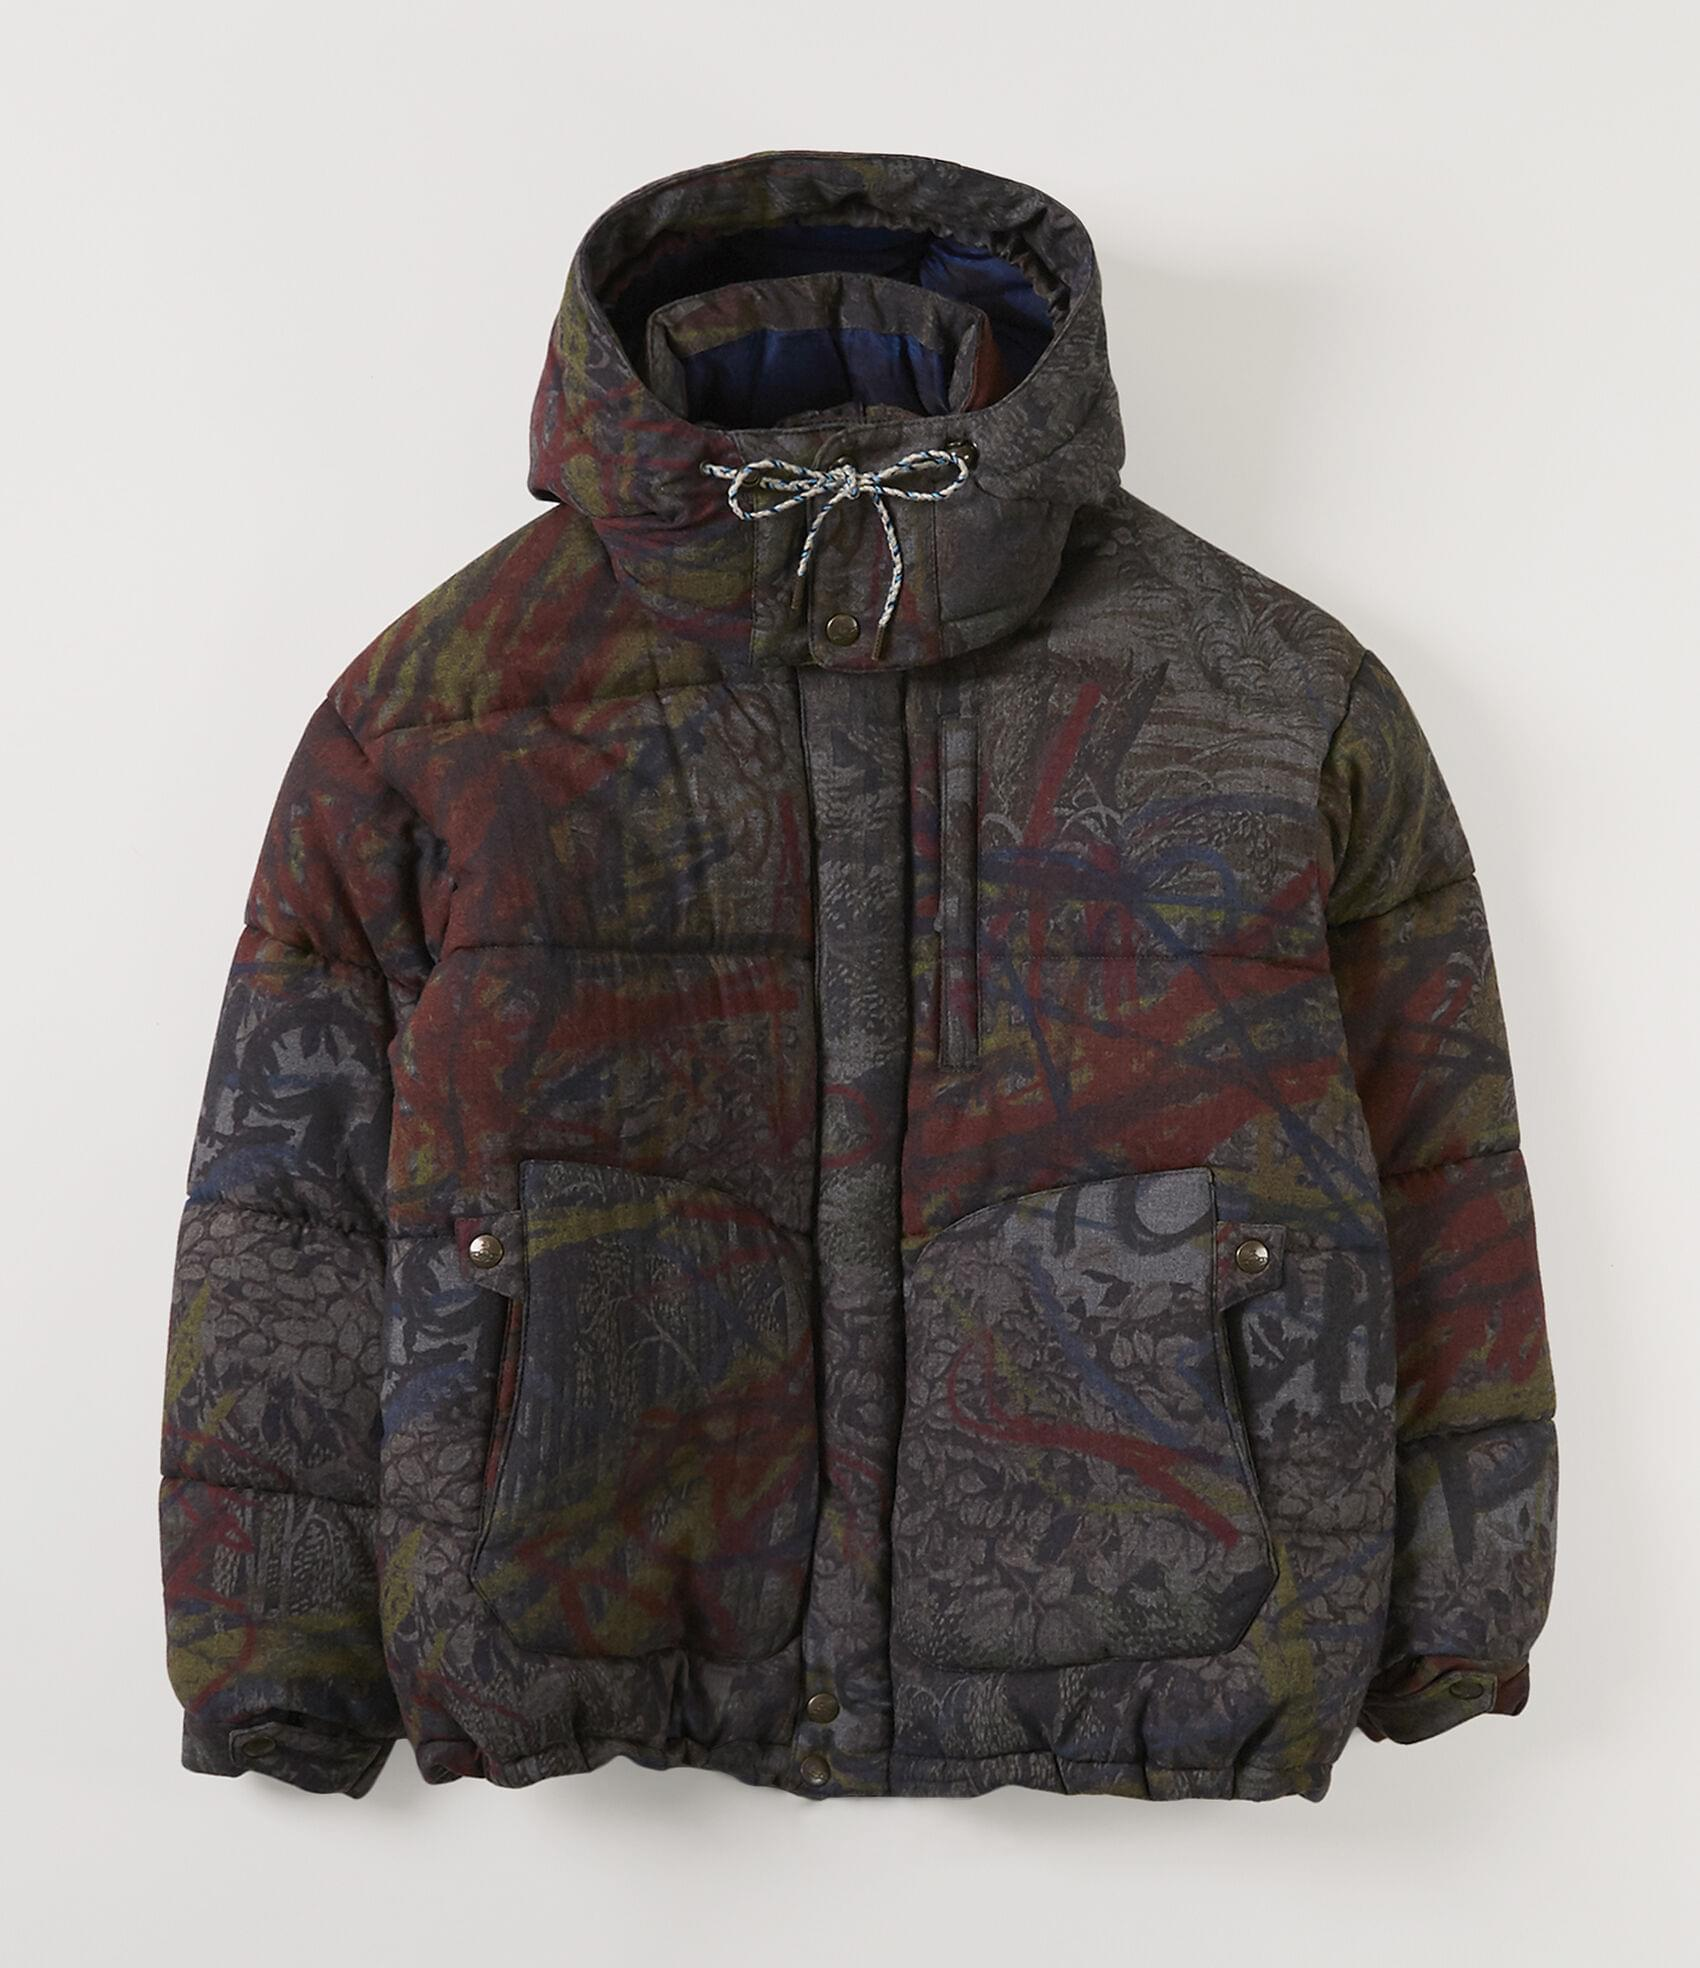 Vivienne Westwood PUFFA COAT NEW TAPESTRY HUNT FIRE